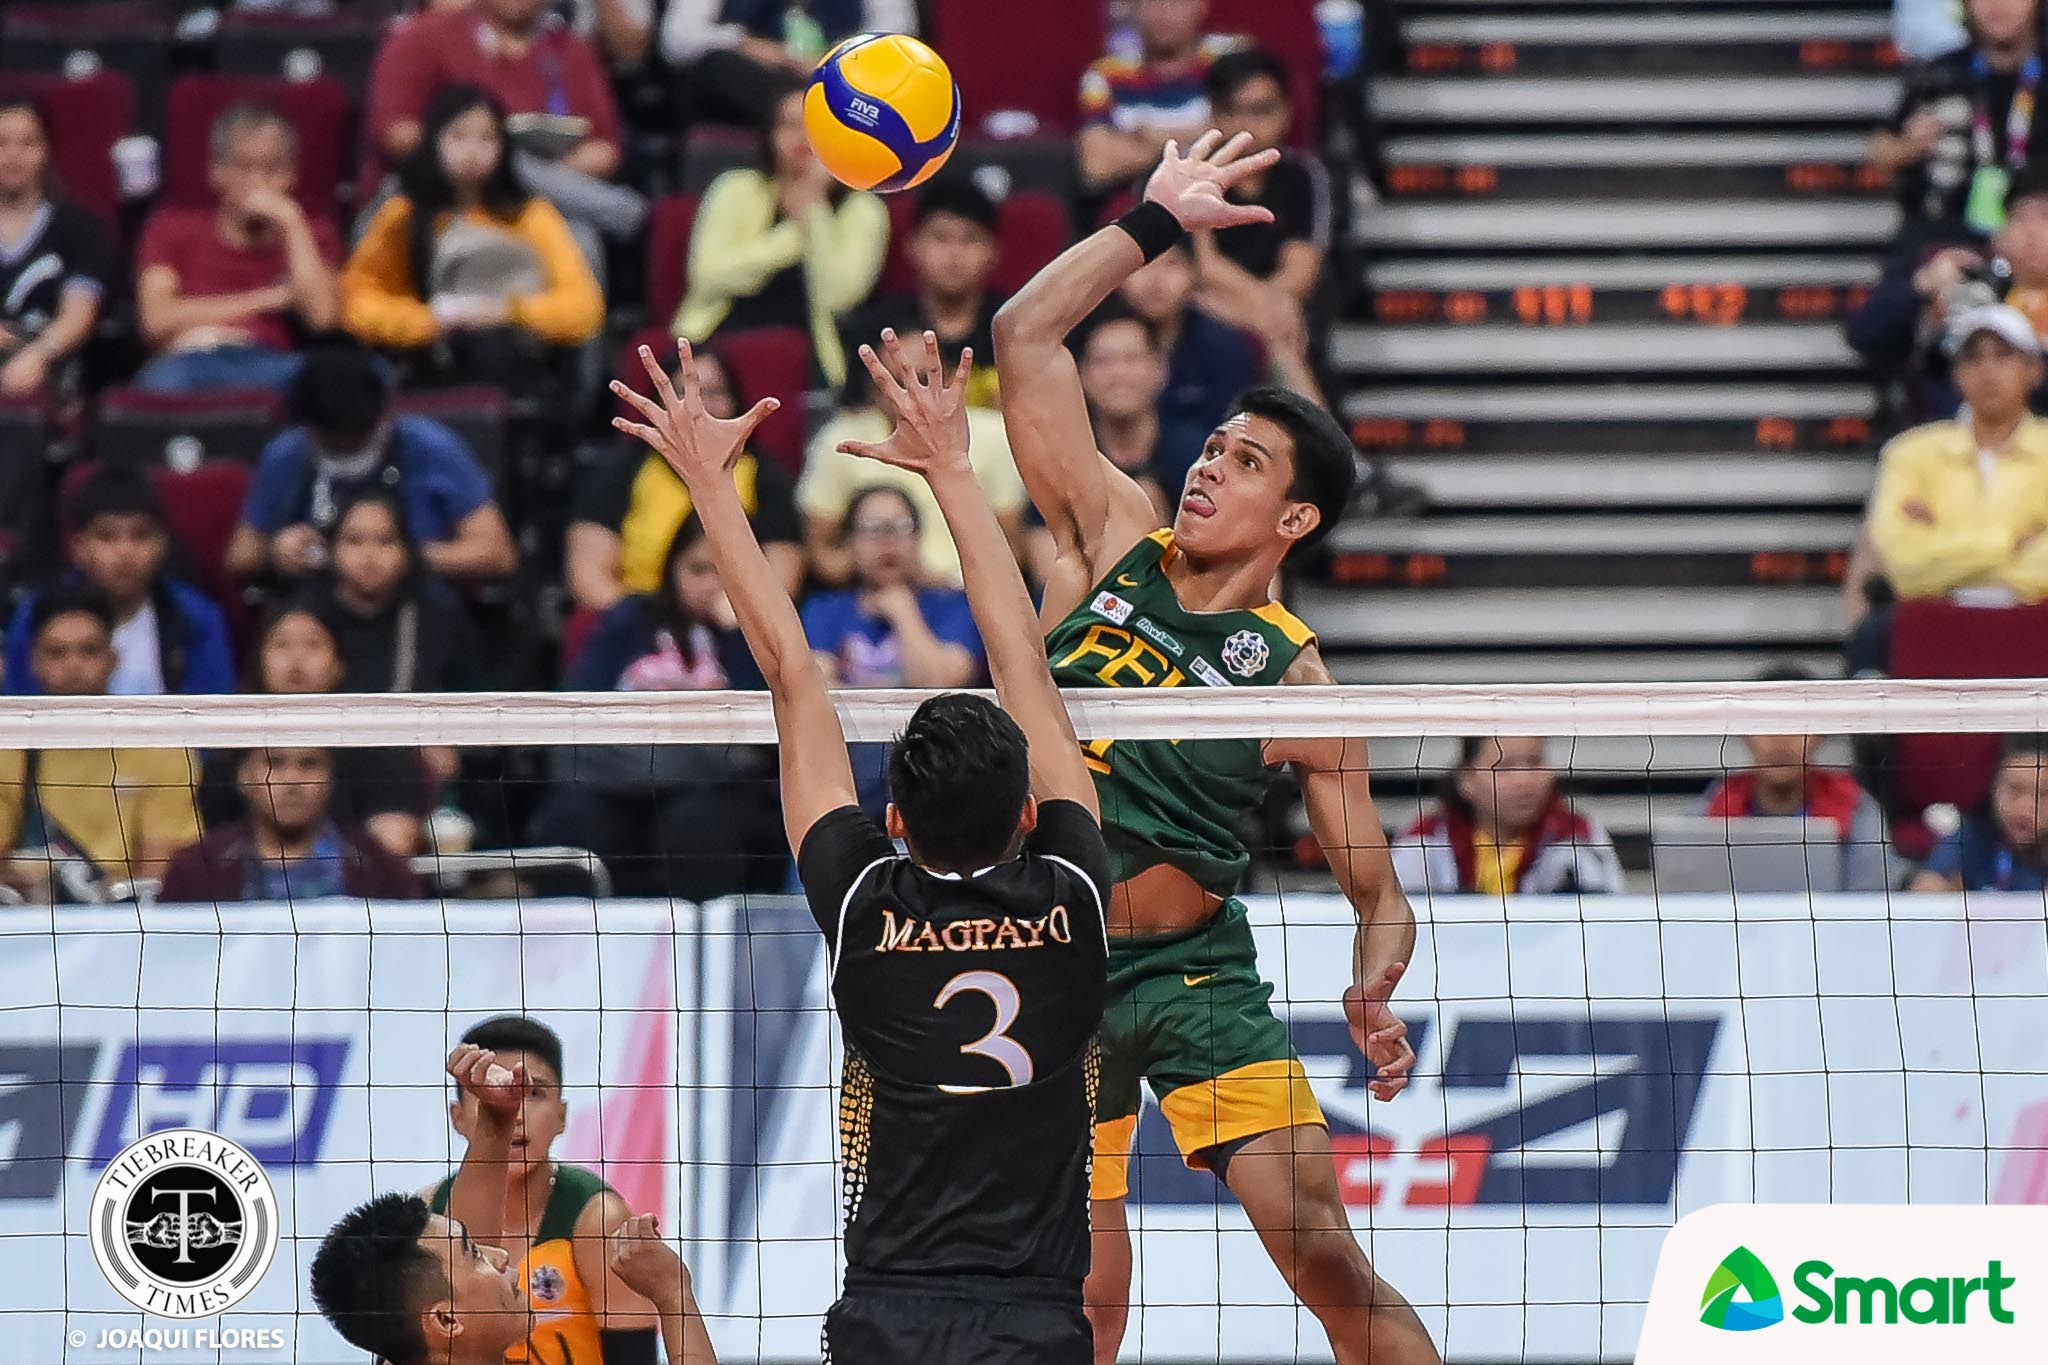 Tiebreaker Times Rey Diaz assures seniors FEU will continue to support them FEU News UAAP Volleyball  uaap season 82 men's volleyball UAAP Season 82 Rey Diaz Peter Quiel Owen Suarez Jude Garcia JP Bugaoan FEU Men's Volleyball Cian Silang